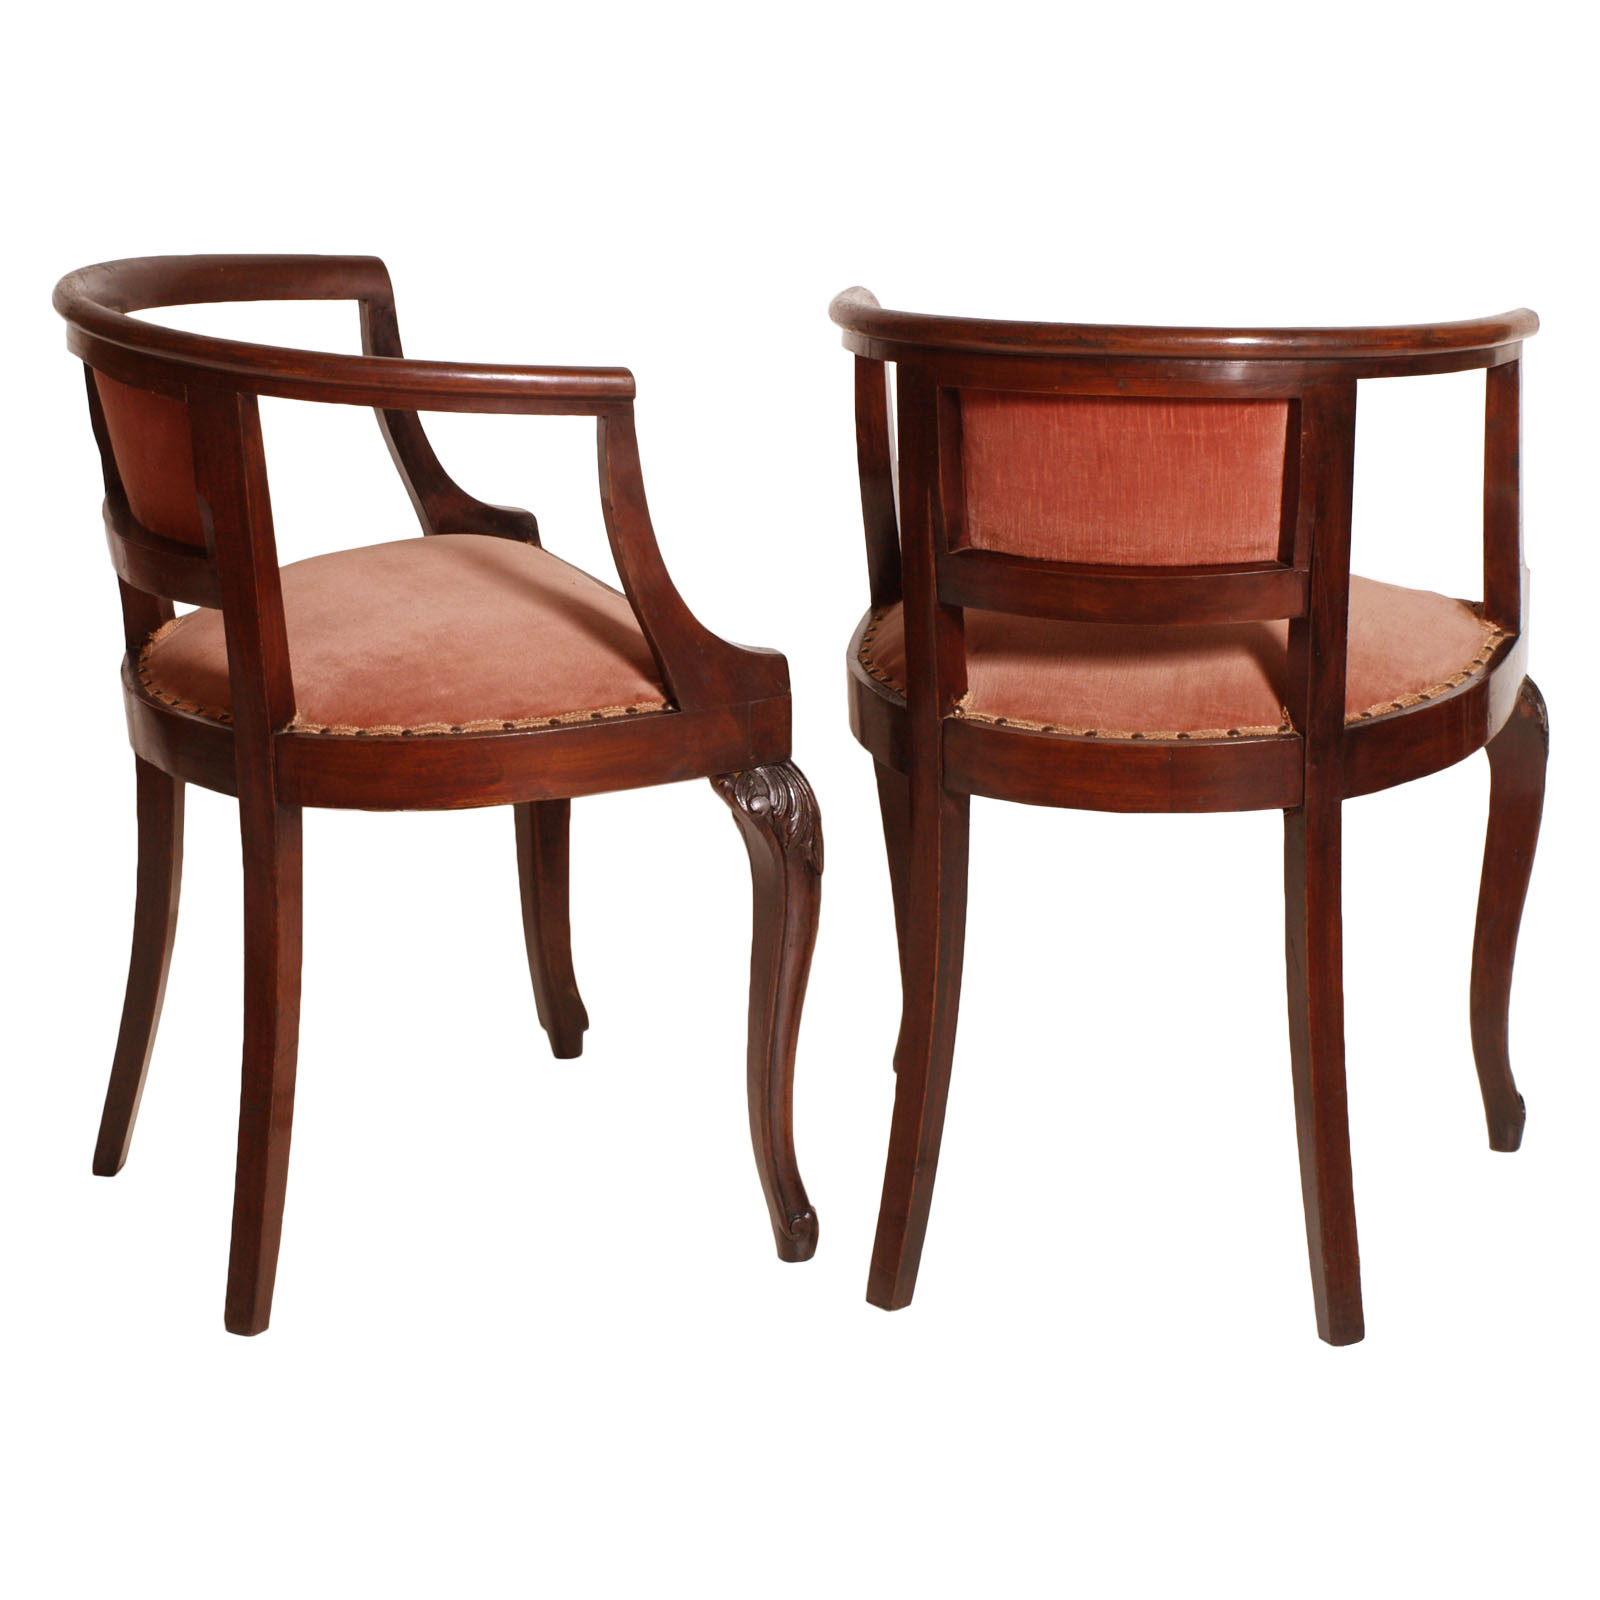 Chairs In Pozzetto Sedie Poltroncine Liberty Of Pair Coppia Antique ...